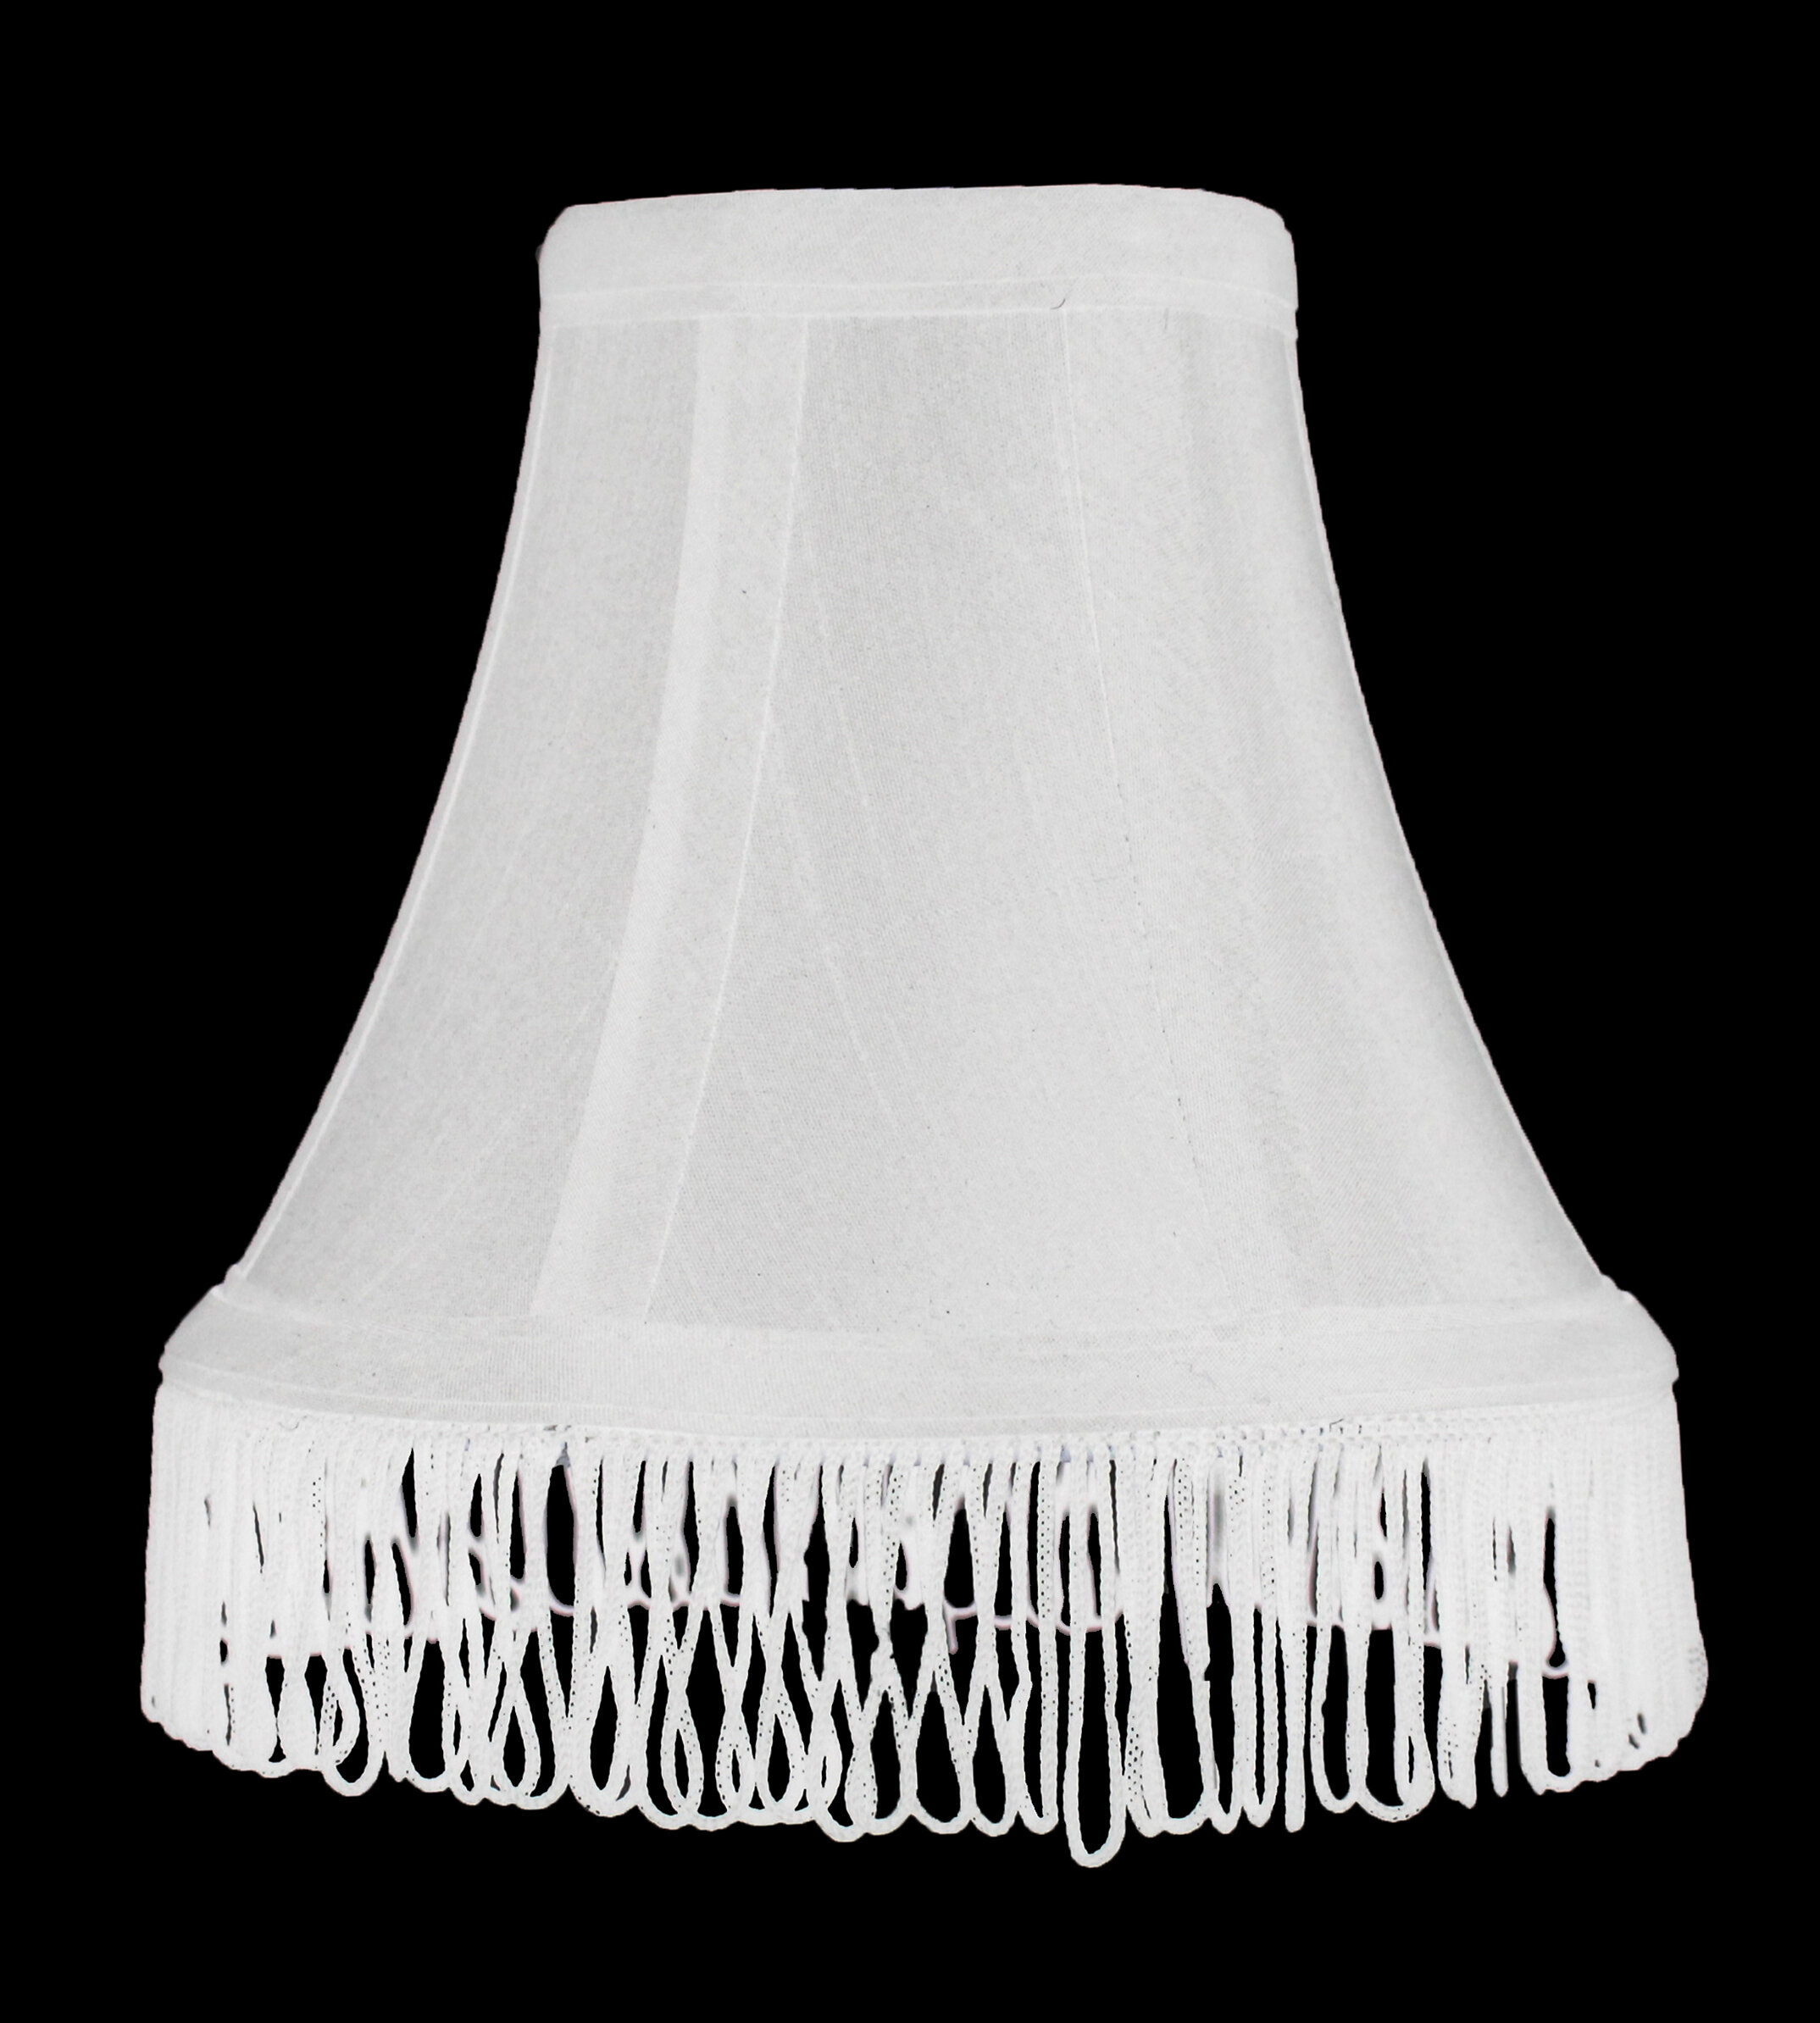 Hanging Light Shades You Ll Love In 2021 Wayfair